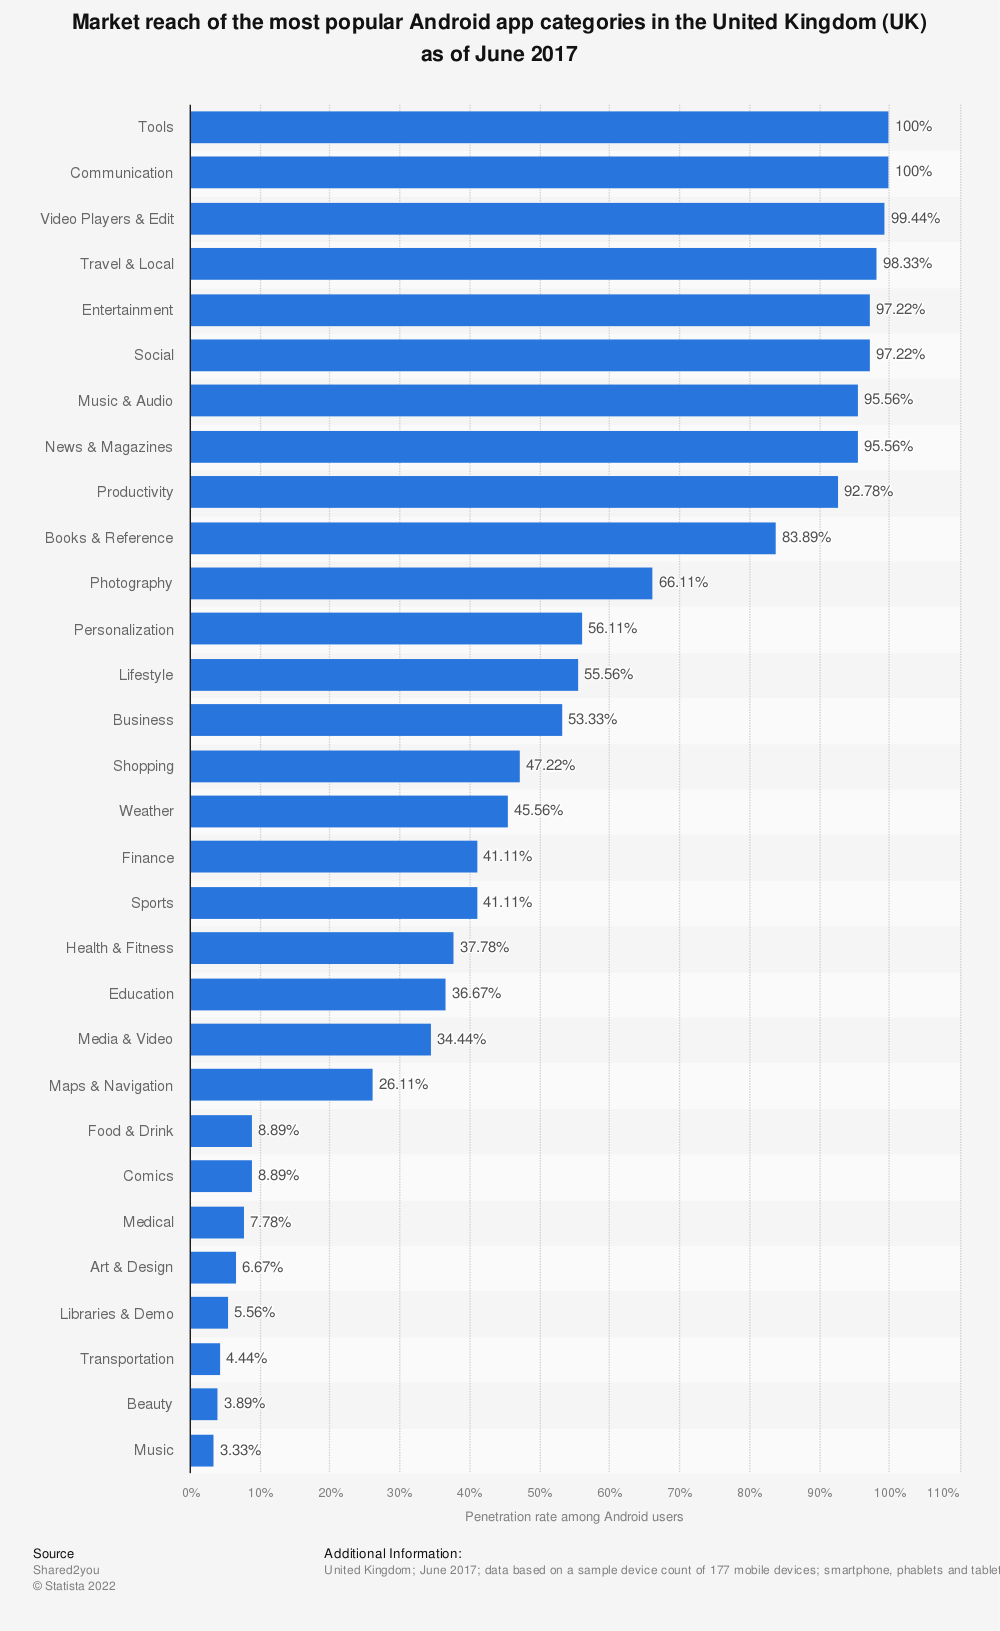 Statistic: Market reach of the most popular Android app categories in the United Kingdom (UK) as of June 2017 | Statista